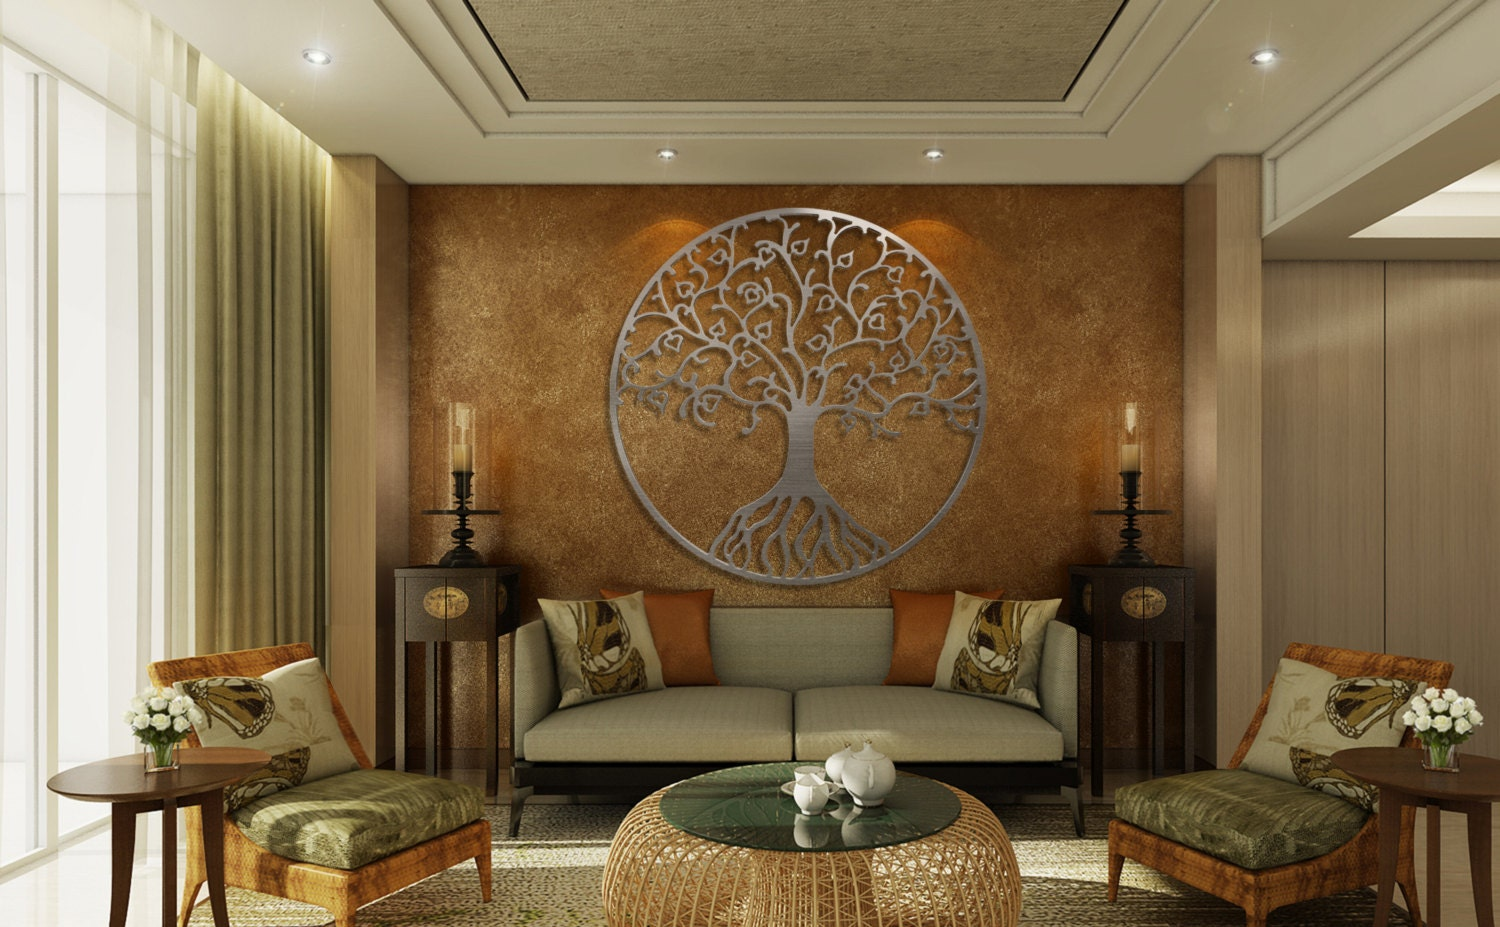 68f886995e Tree of Life Metal Wall Art, Metal Tree Wall Art, Circle Wall Art, Silver,  Modern Wall Decor, Large Metal Wall Art, 3D Wall Sculpture